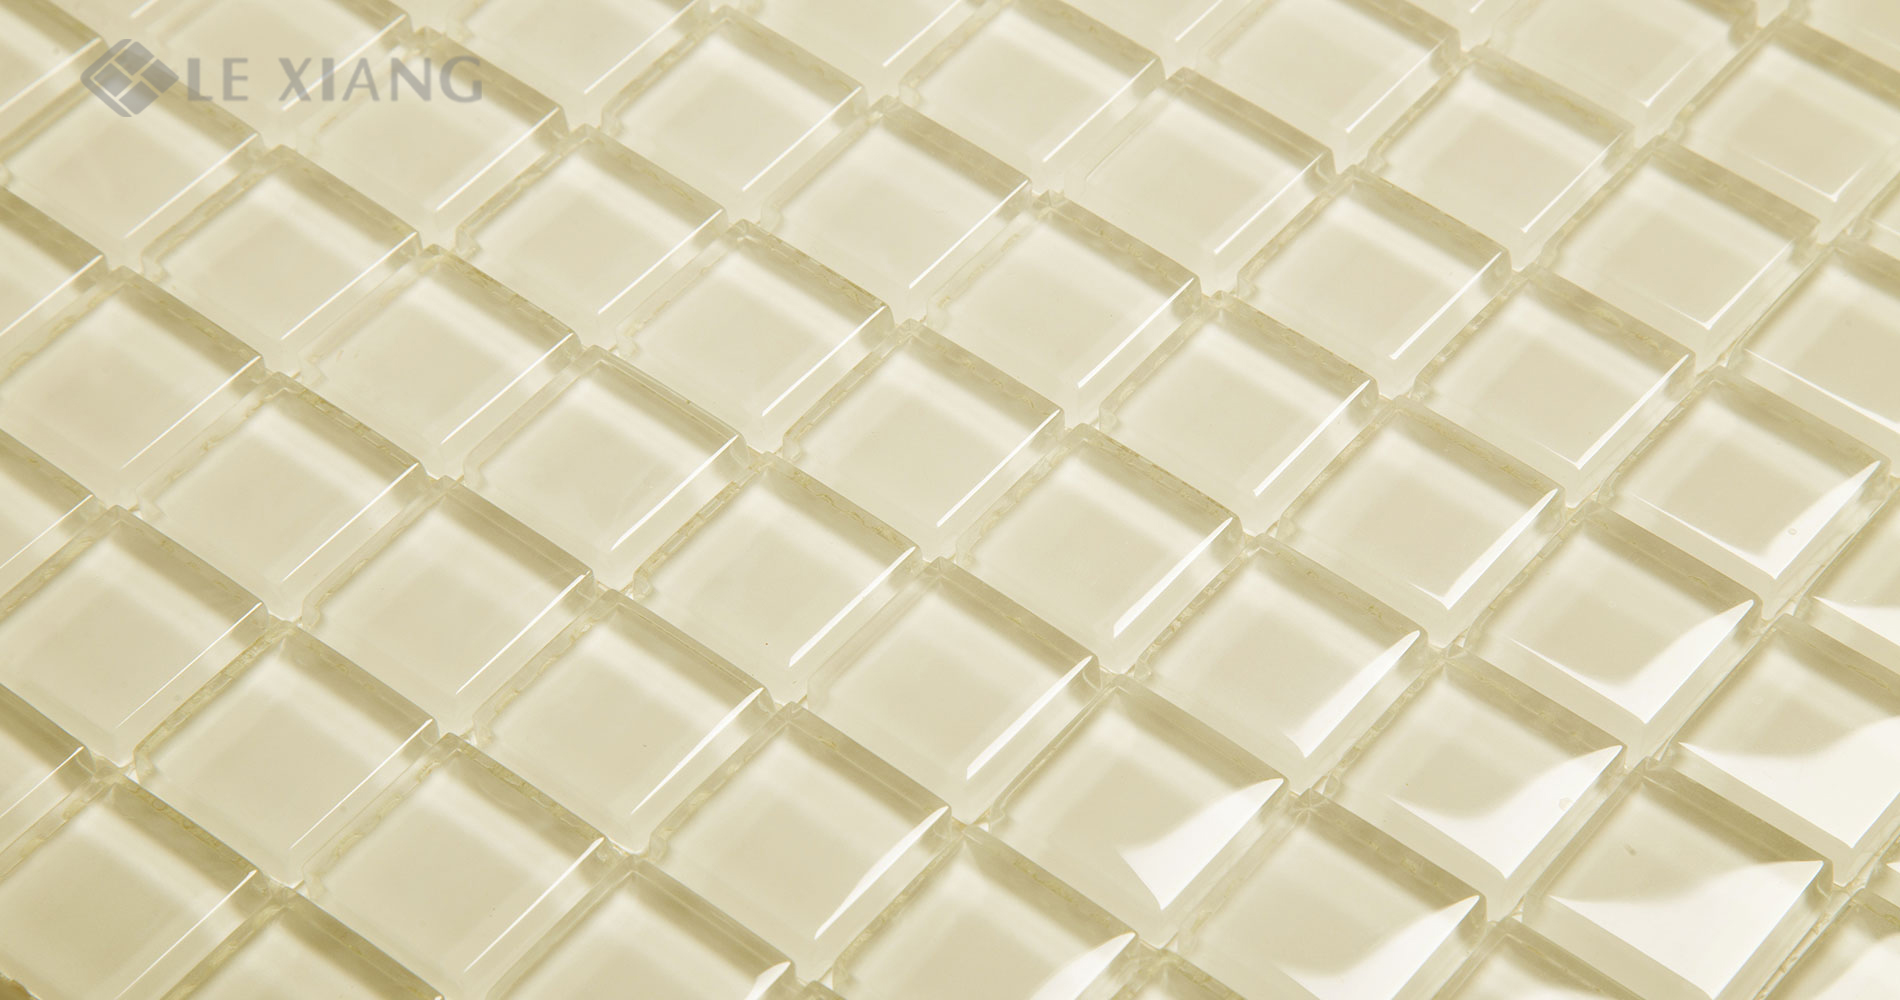 25mm-Square-Crystal-Glass-Blue-Mosaic-Tile-Backsplash-12